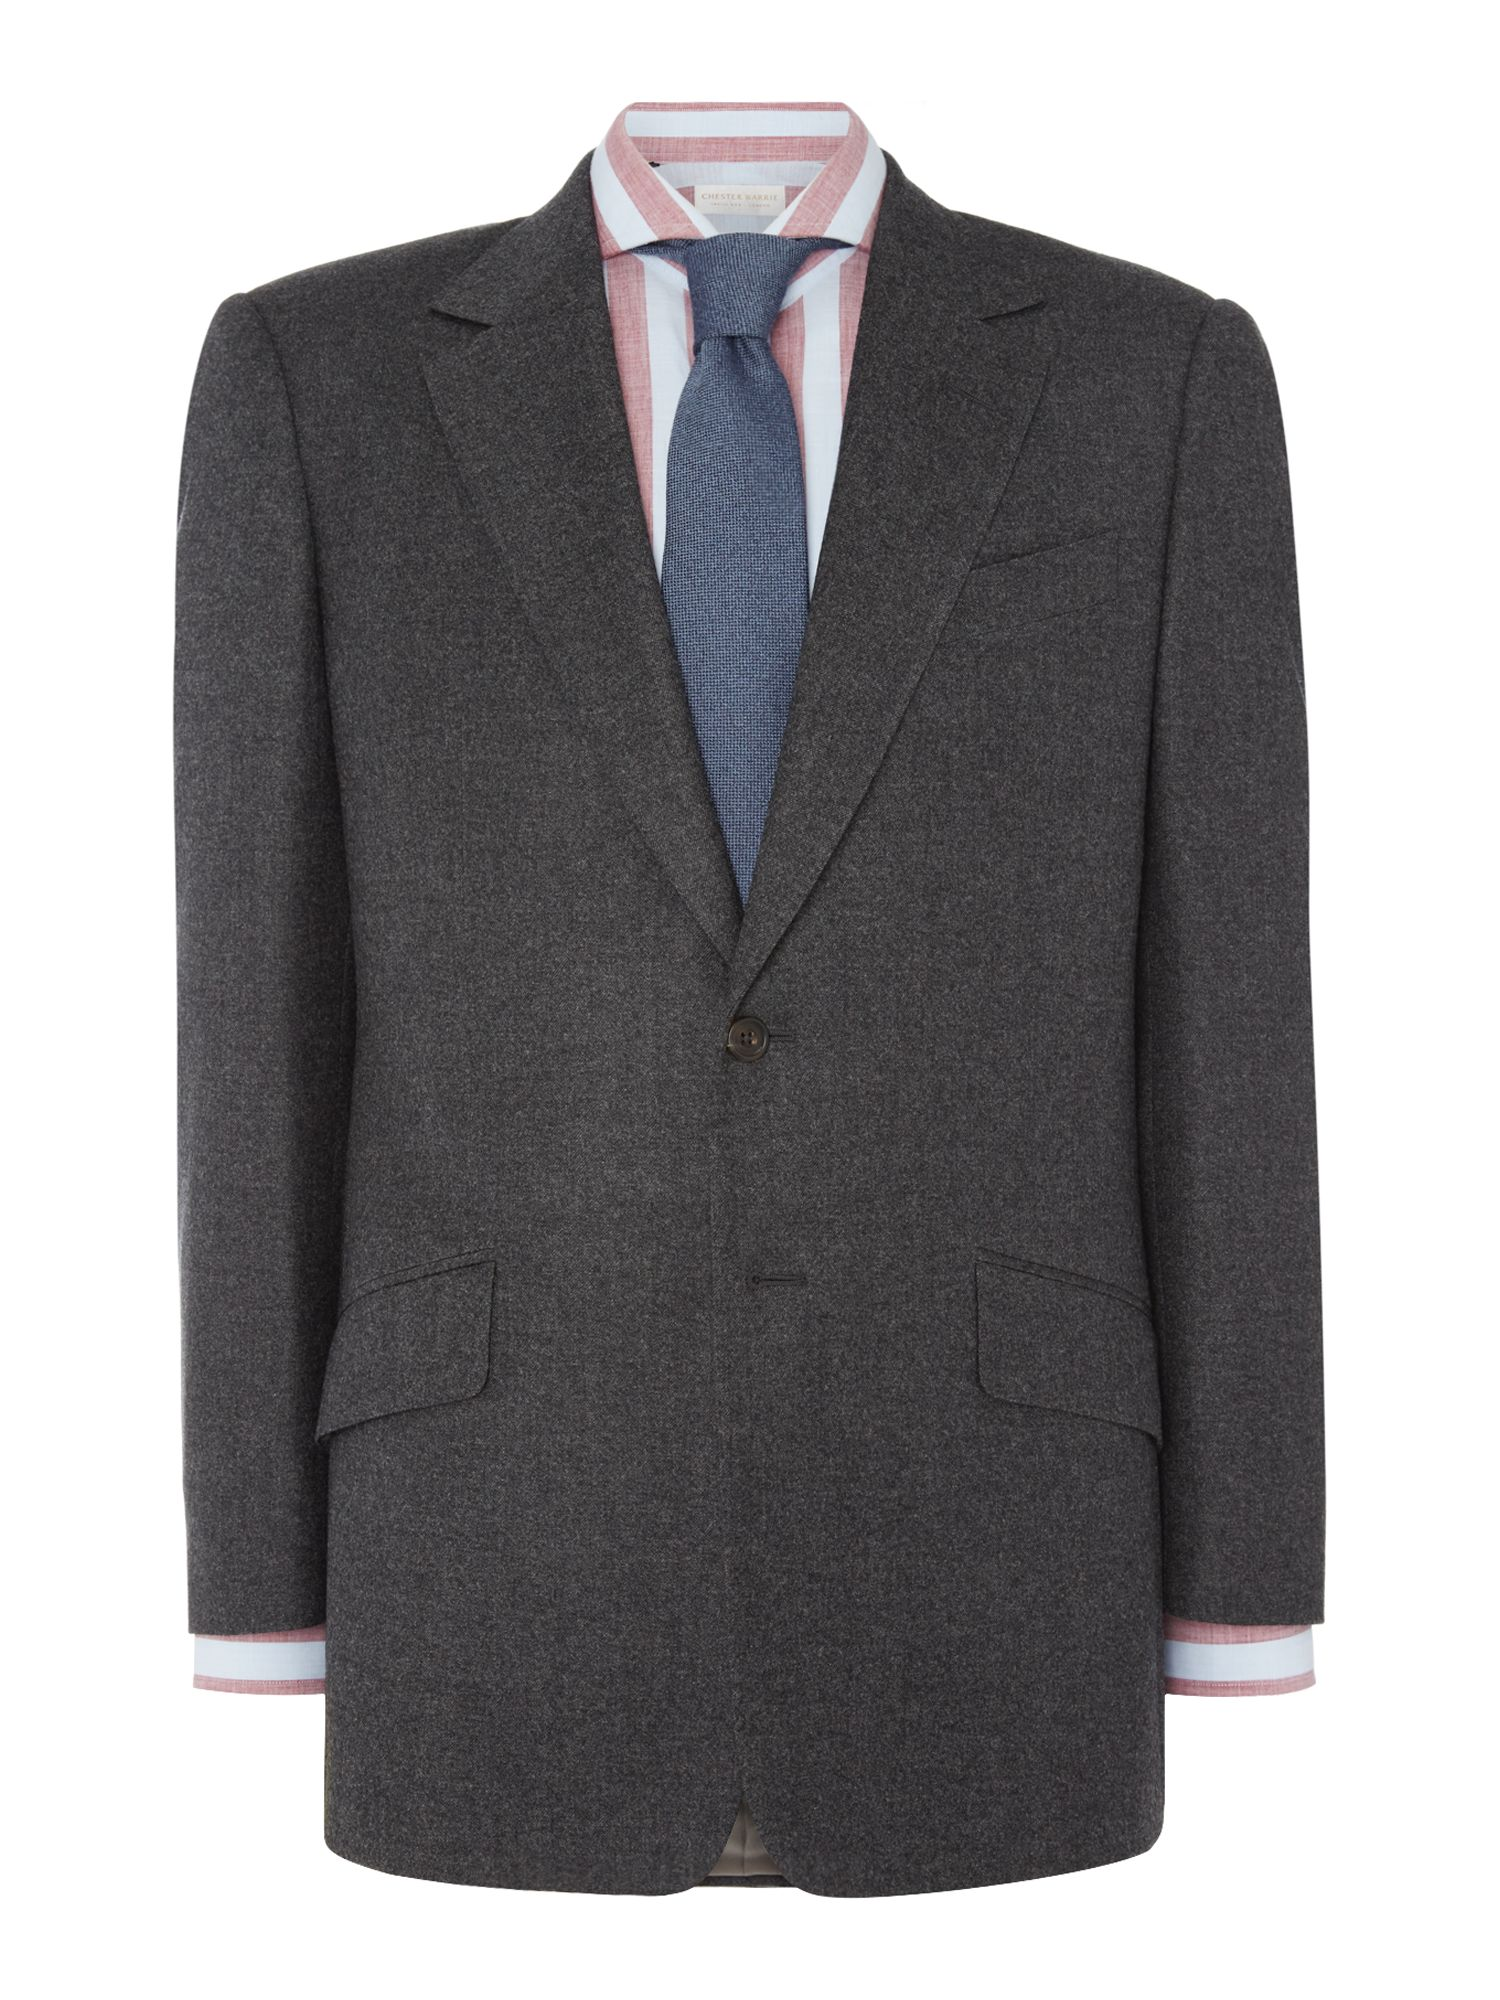 Chester Barrie Men's Chester Barrie Burlington Lux Flannel Suit, Charcoal